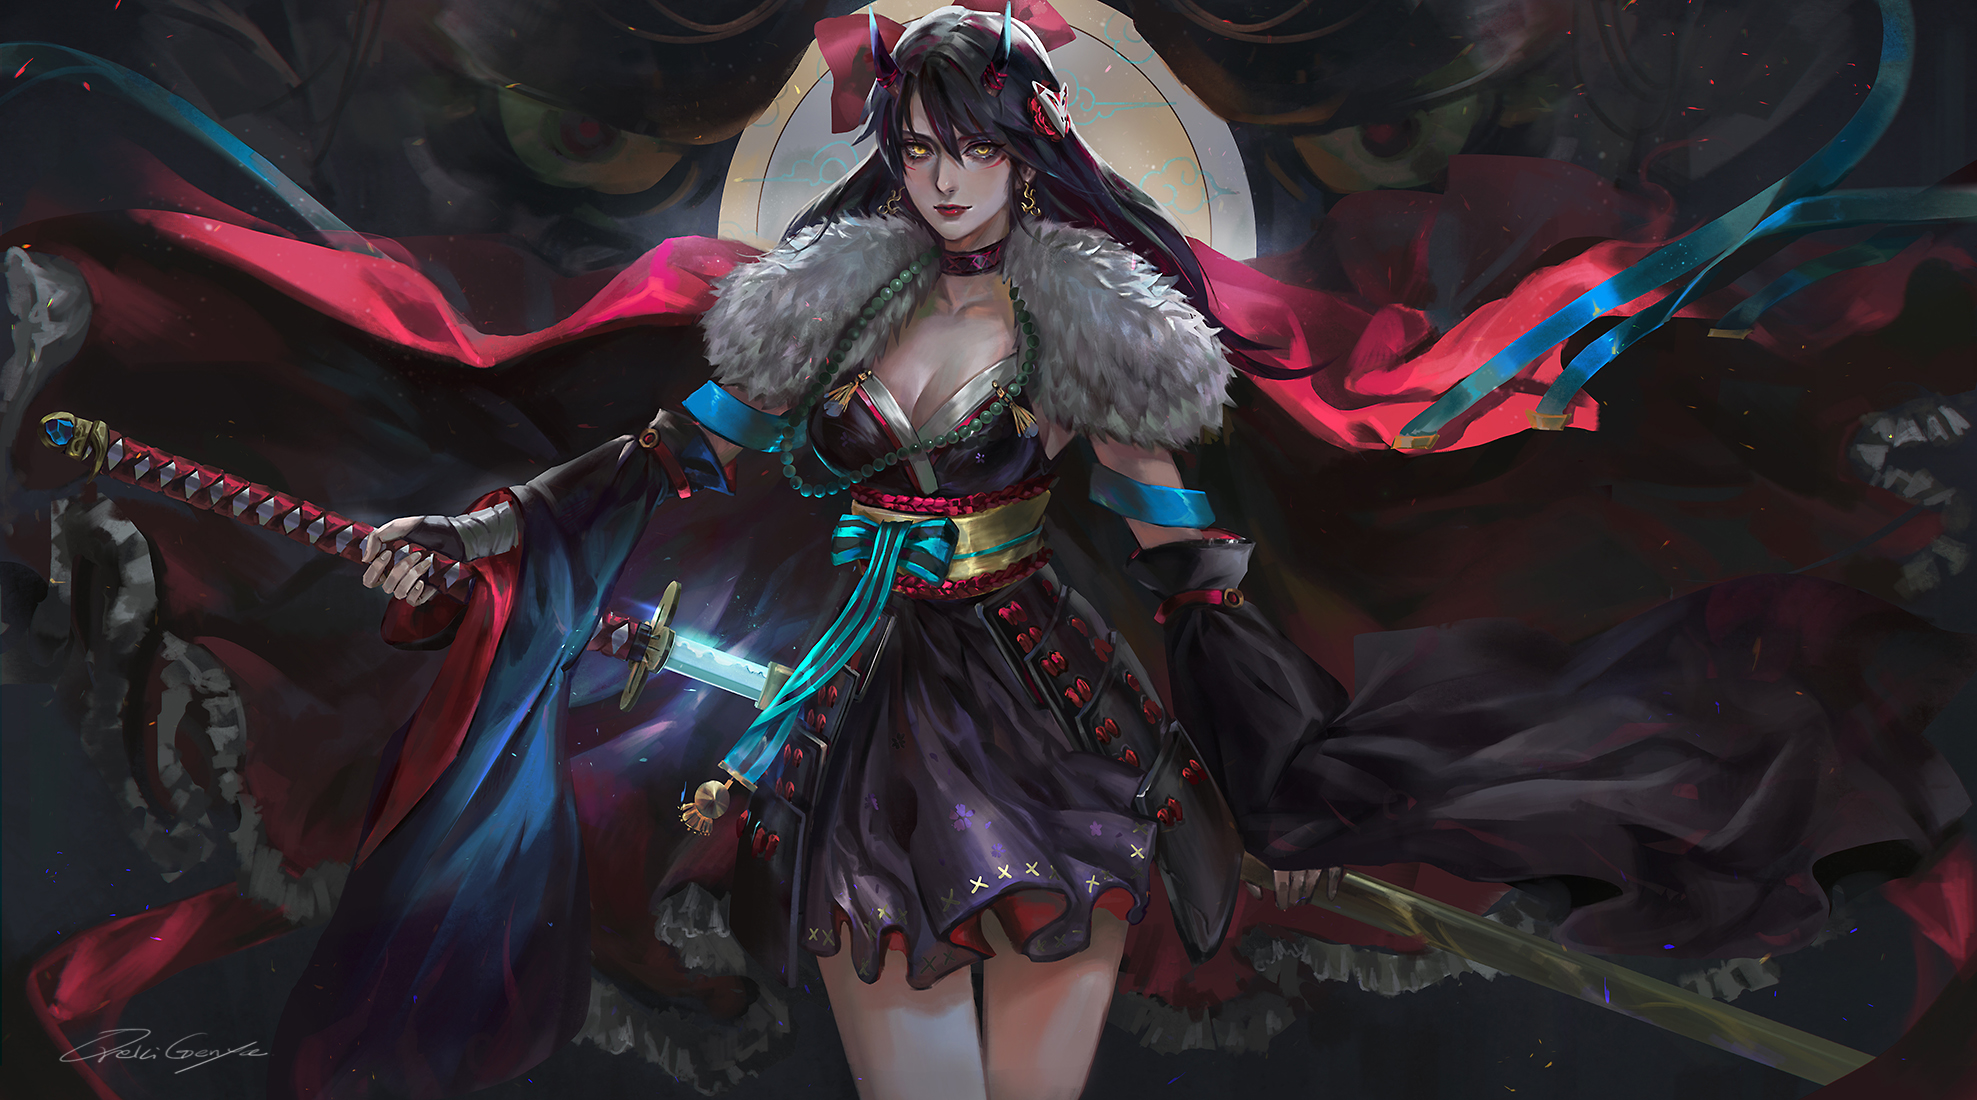 General 1977x1100 women fantasy girl demon girls horns long hair looking at viewer yellow eyes original characters cleavage cape armor samurai demon sword weapon fantasy art dress detached sleeves artwork drawing digital art illustration DeviantArt